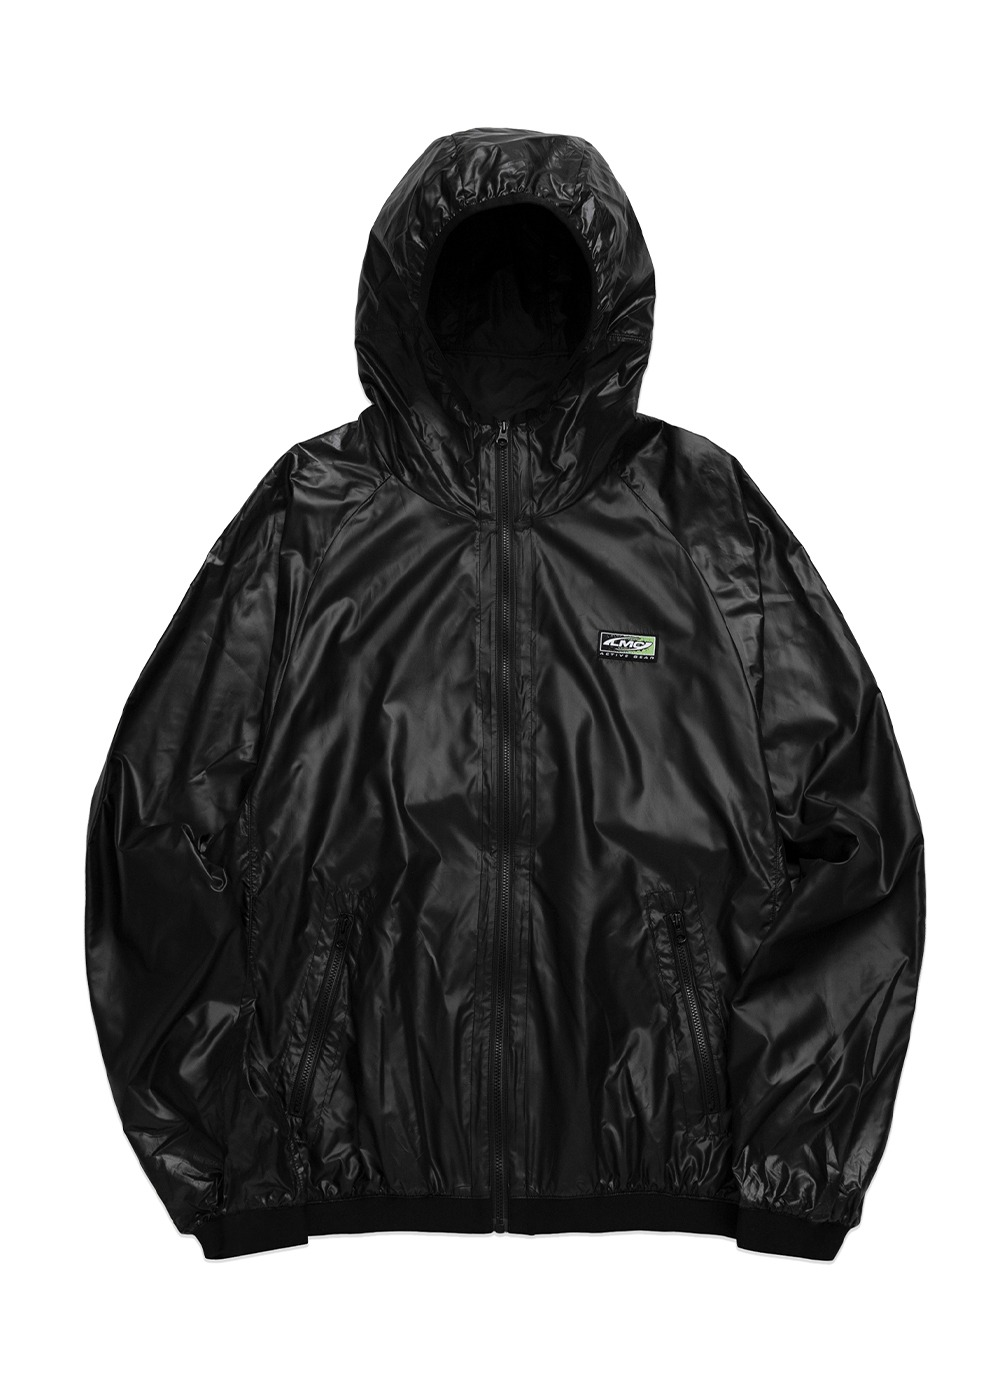 LMC GEAR PACKABLE LIGHTWEIGHT JACKET black